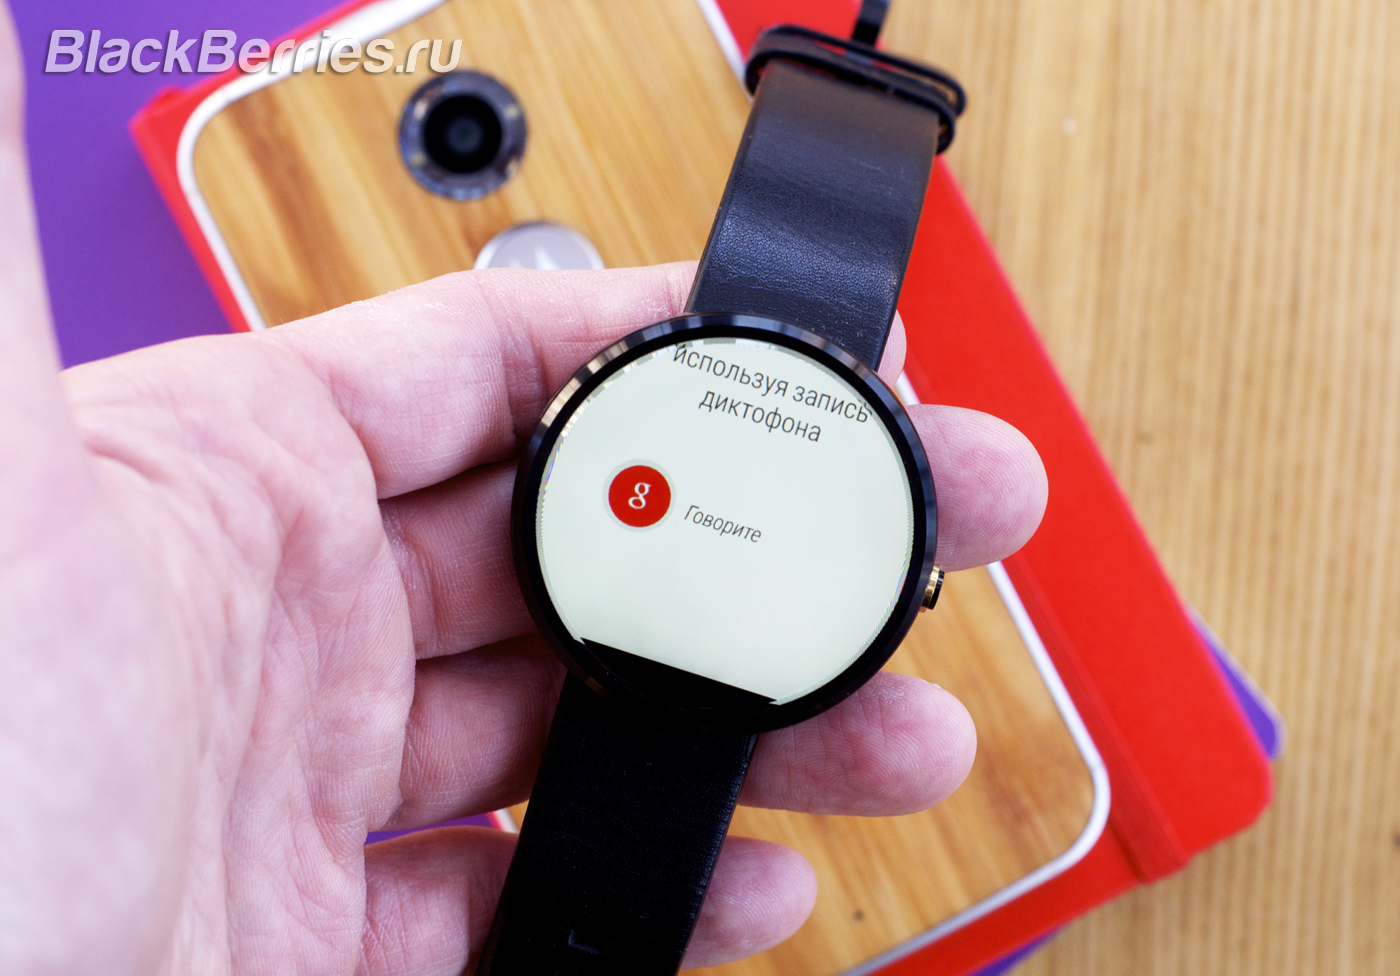 BBM-Android-Wear-BB-05